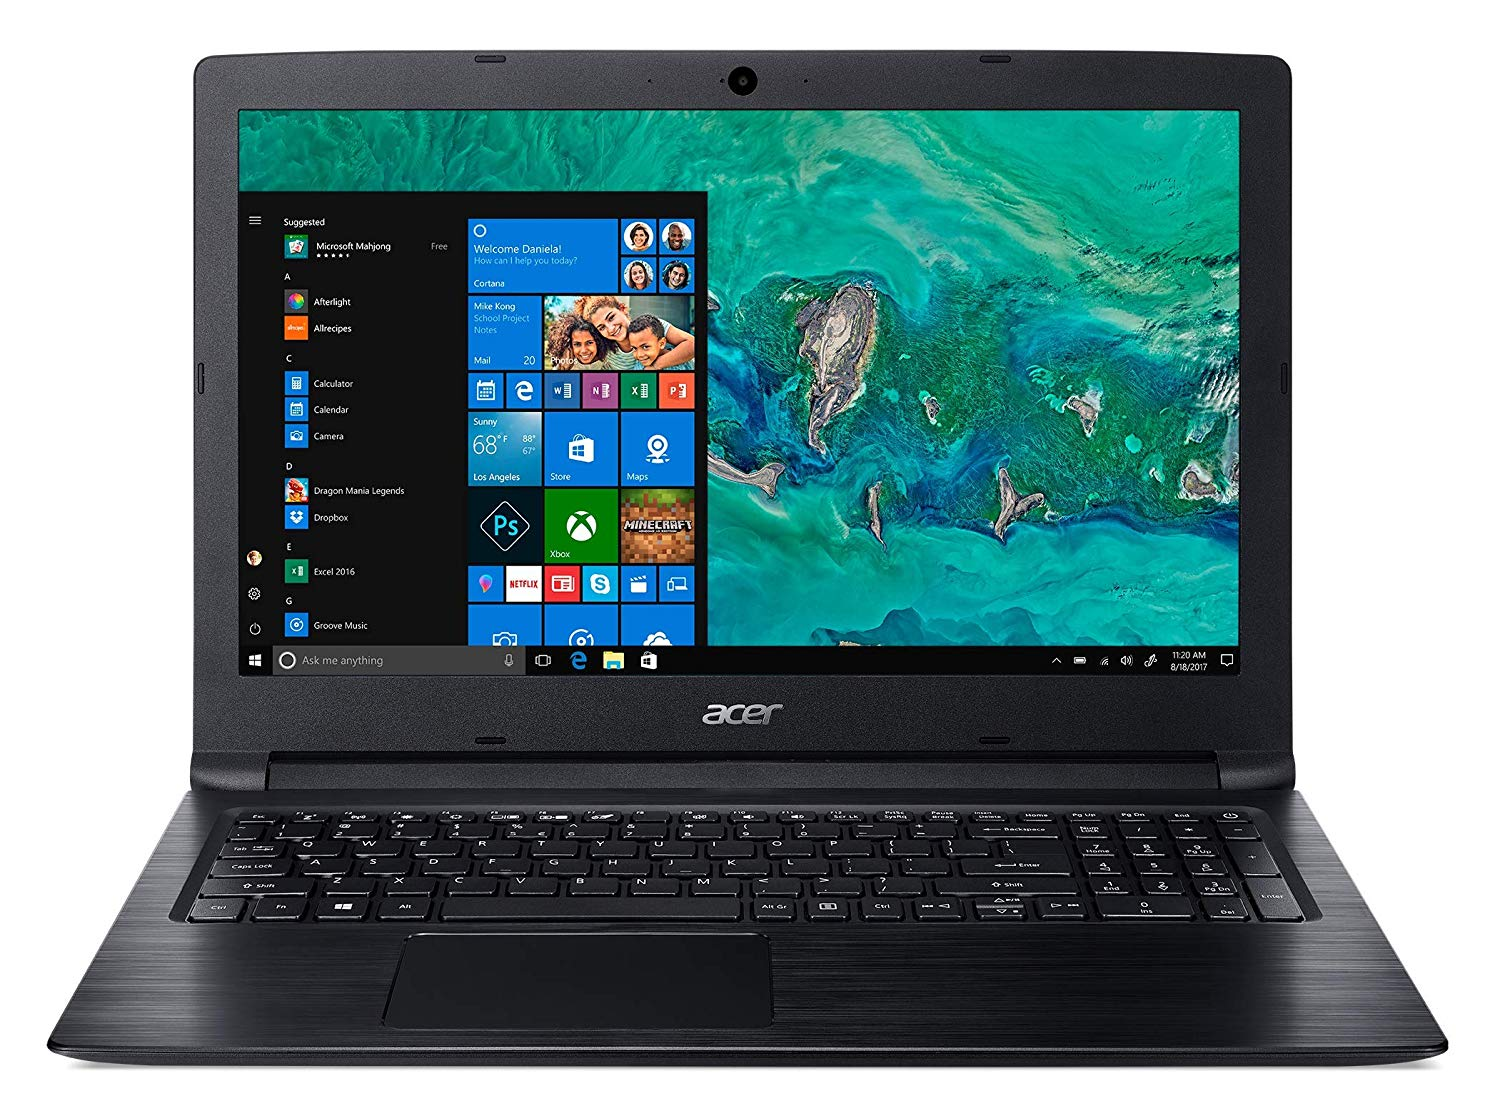 How to Fix Acer Aspire Black Screen Problem